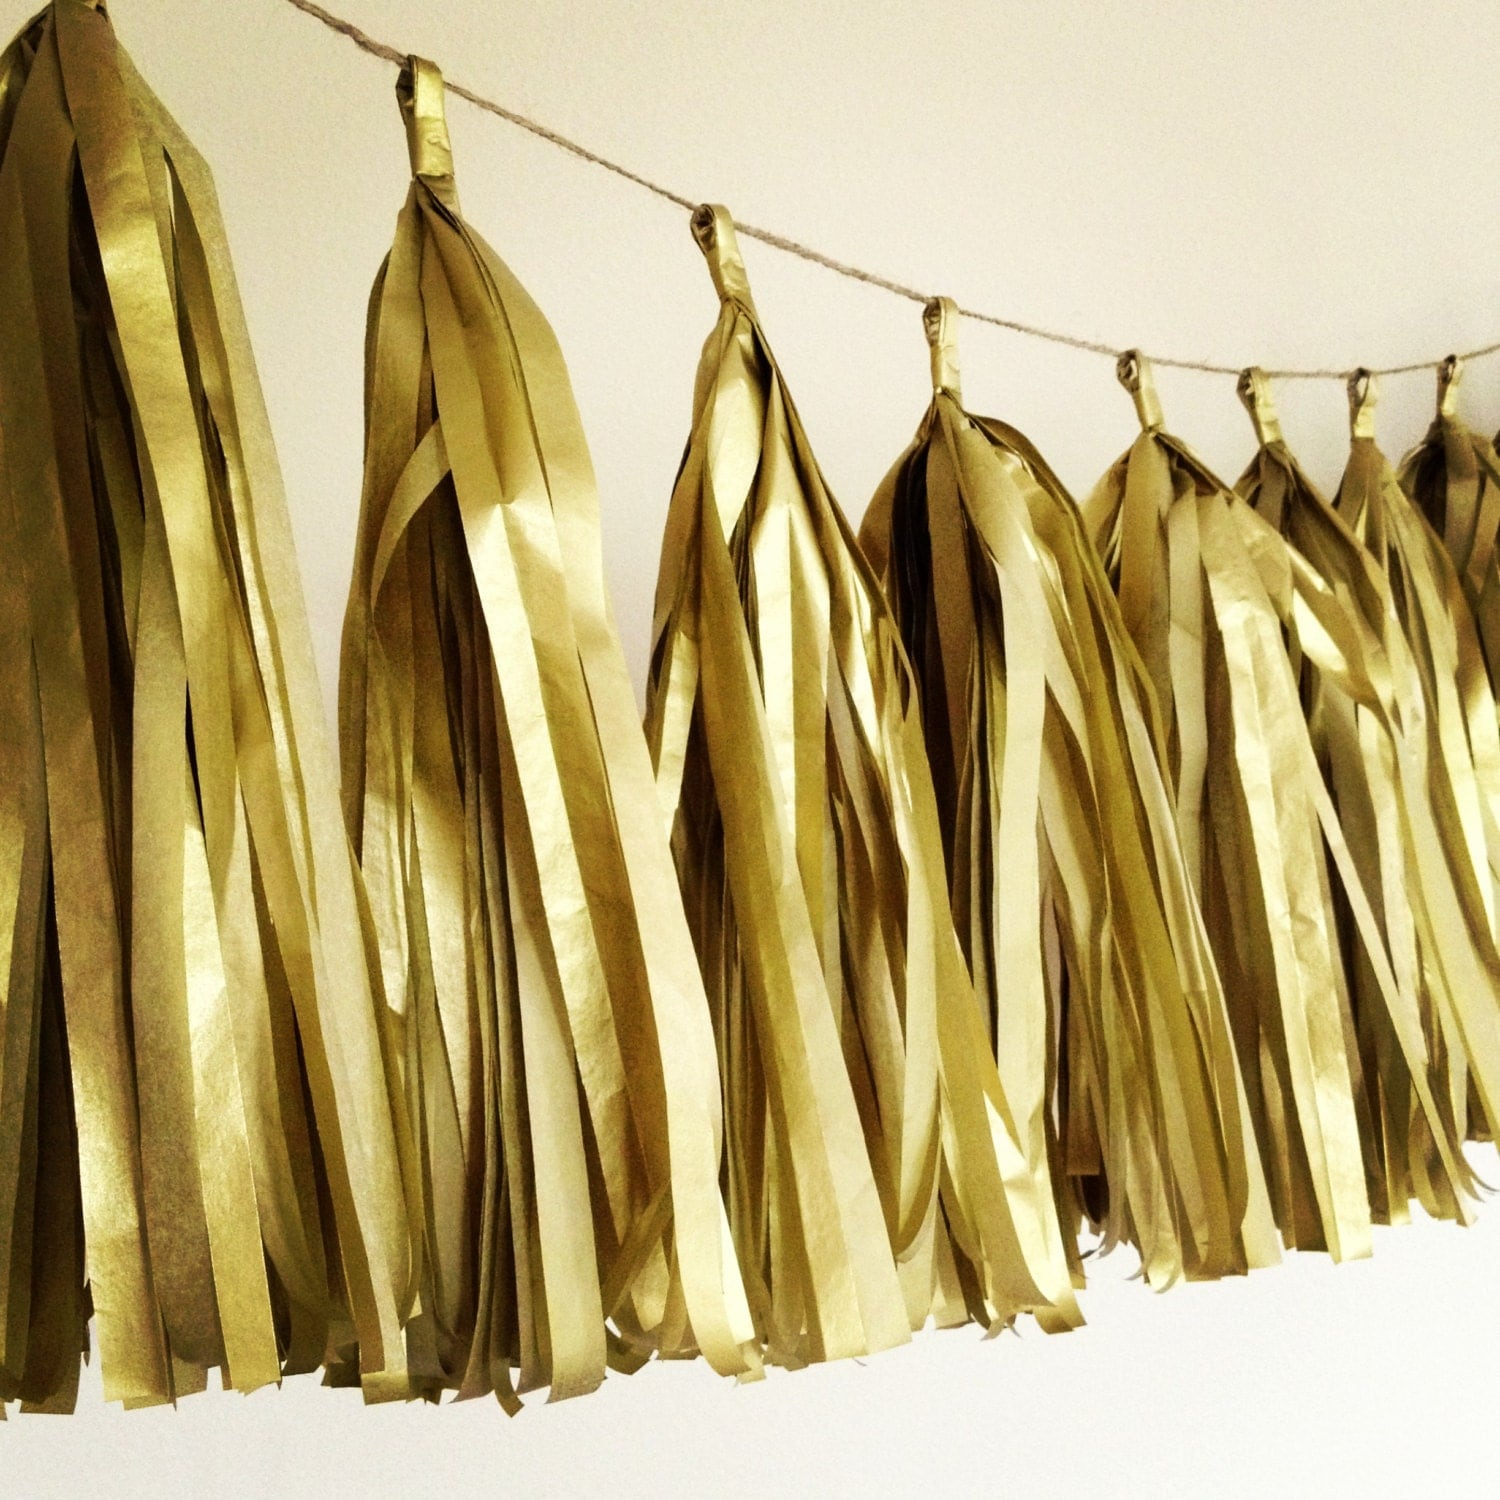 gold metallic tissue paper tassel garland wedding decorations new years eve decorations - Gold Decorations